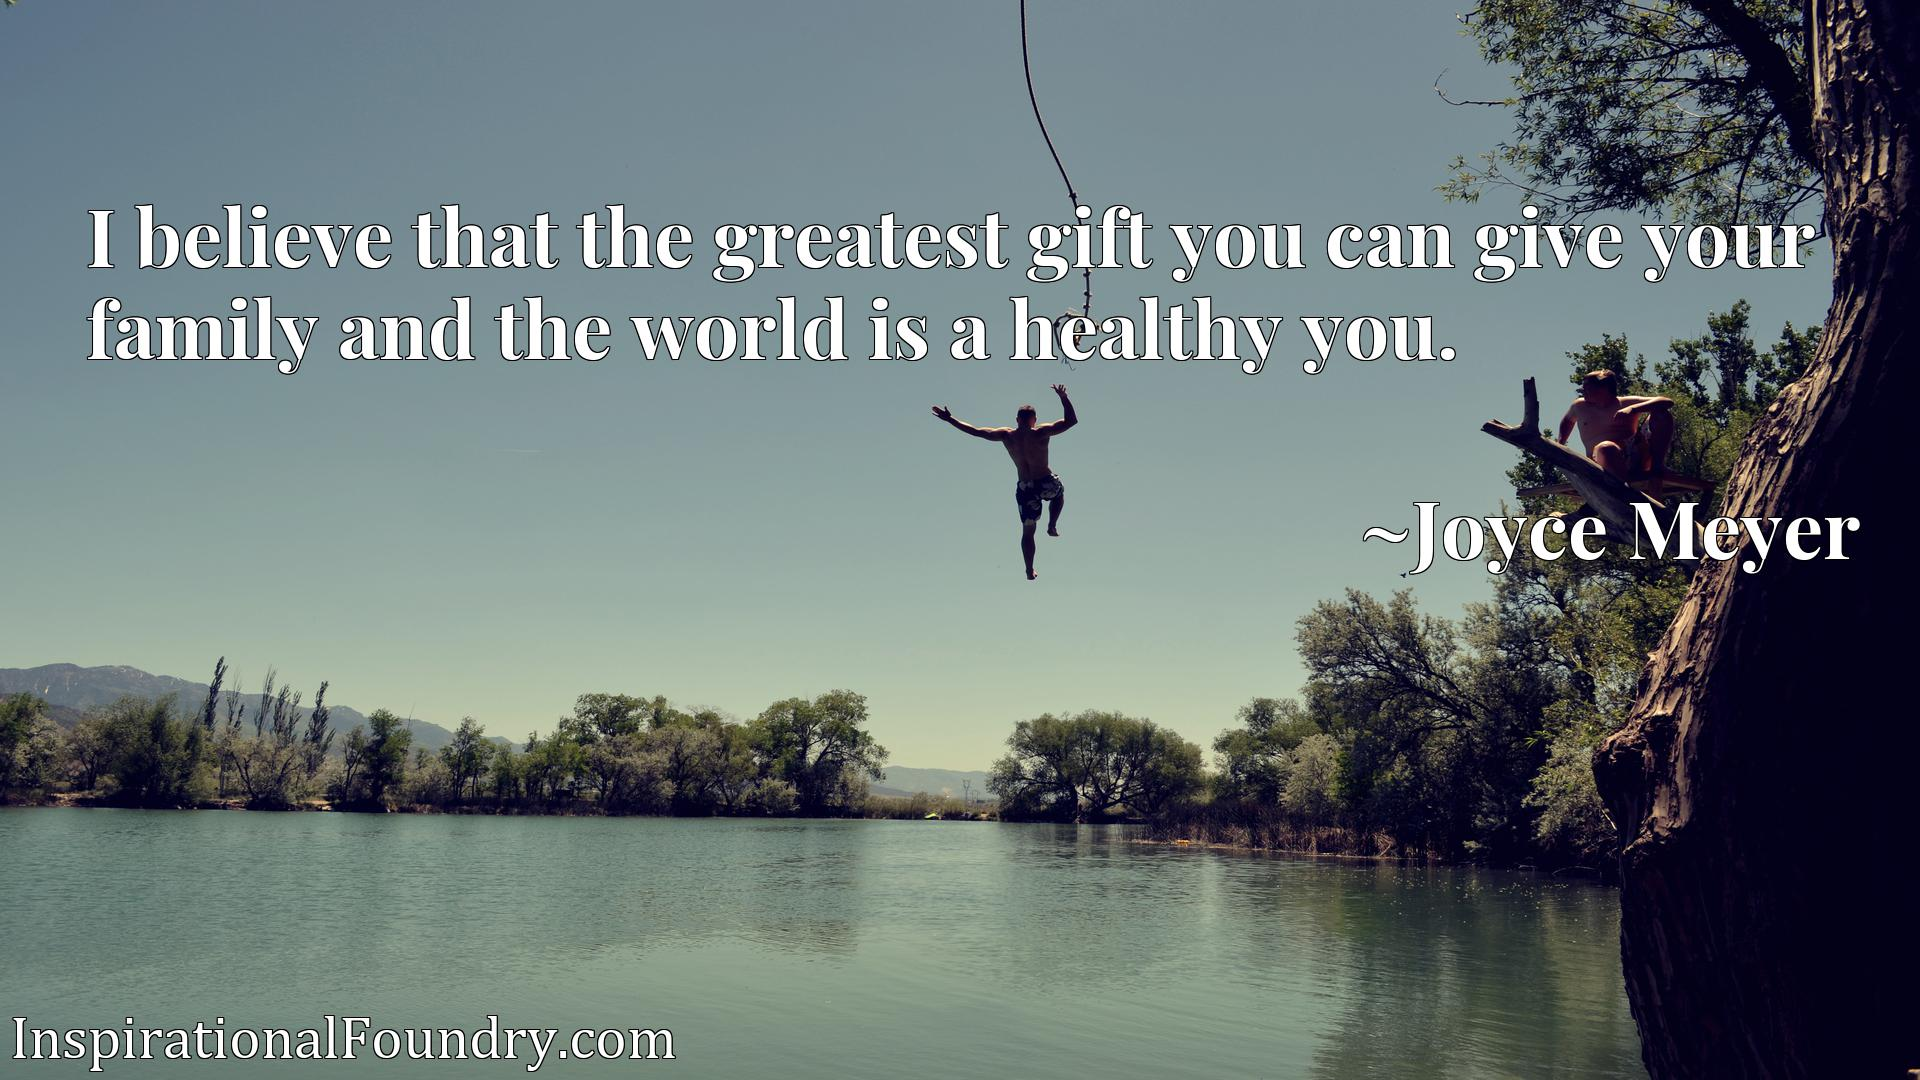 I believe that the greatest gift you can give your family and the world is a healthy you.